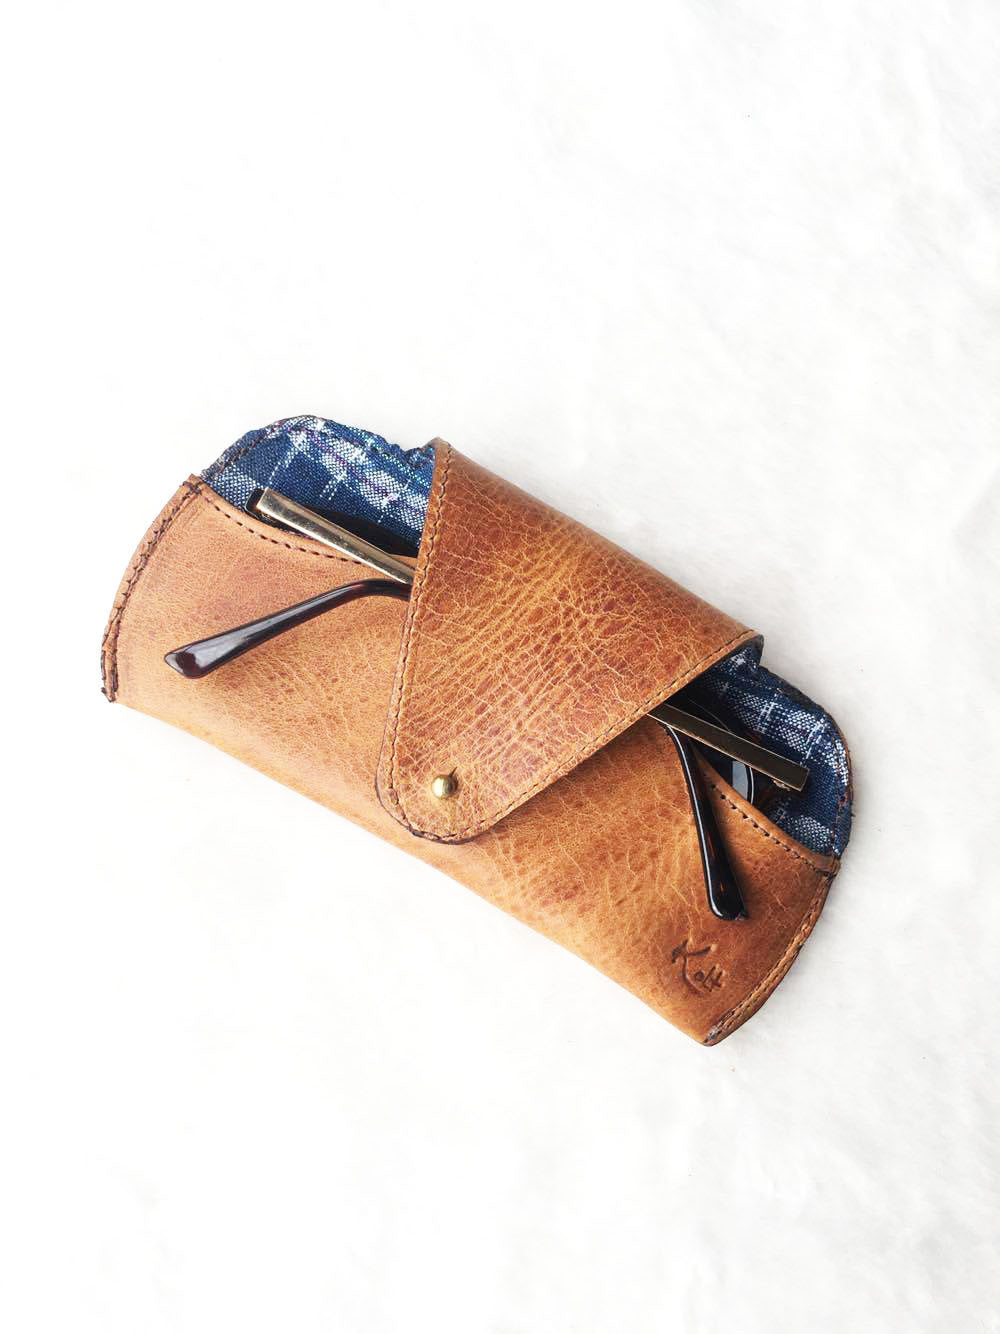 Sunglass Leather Case